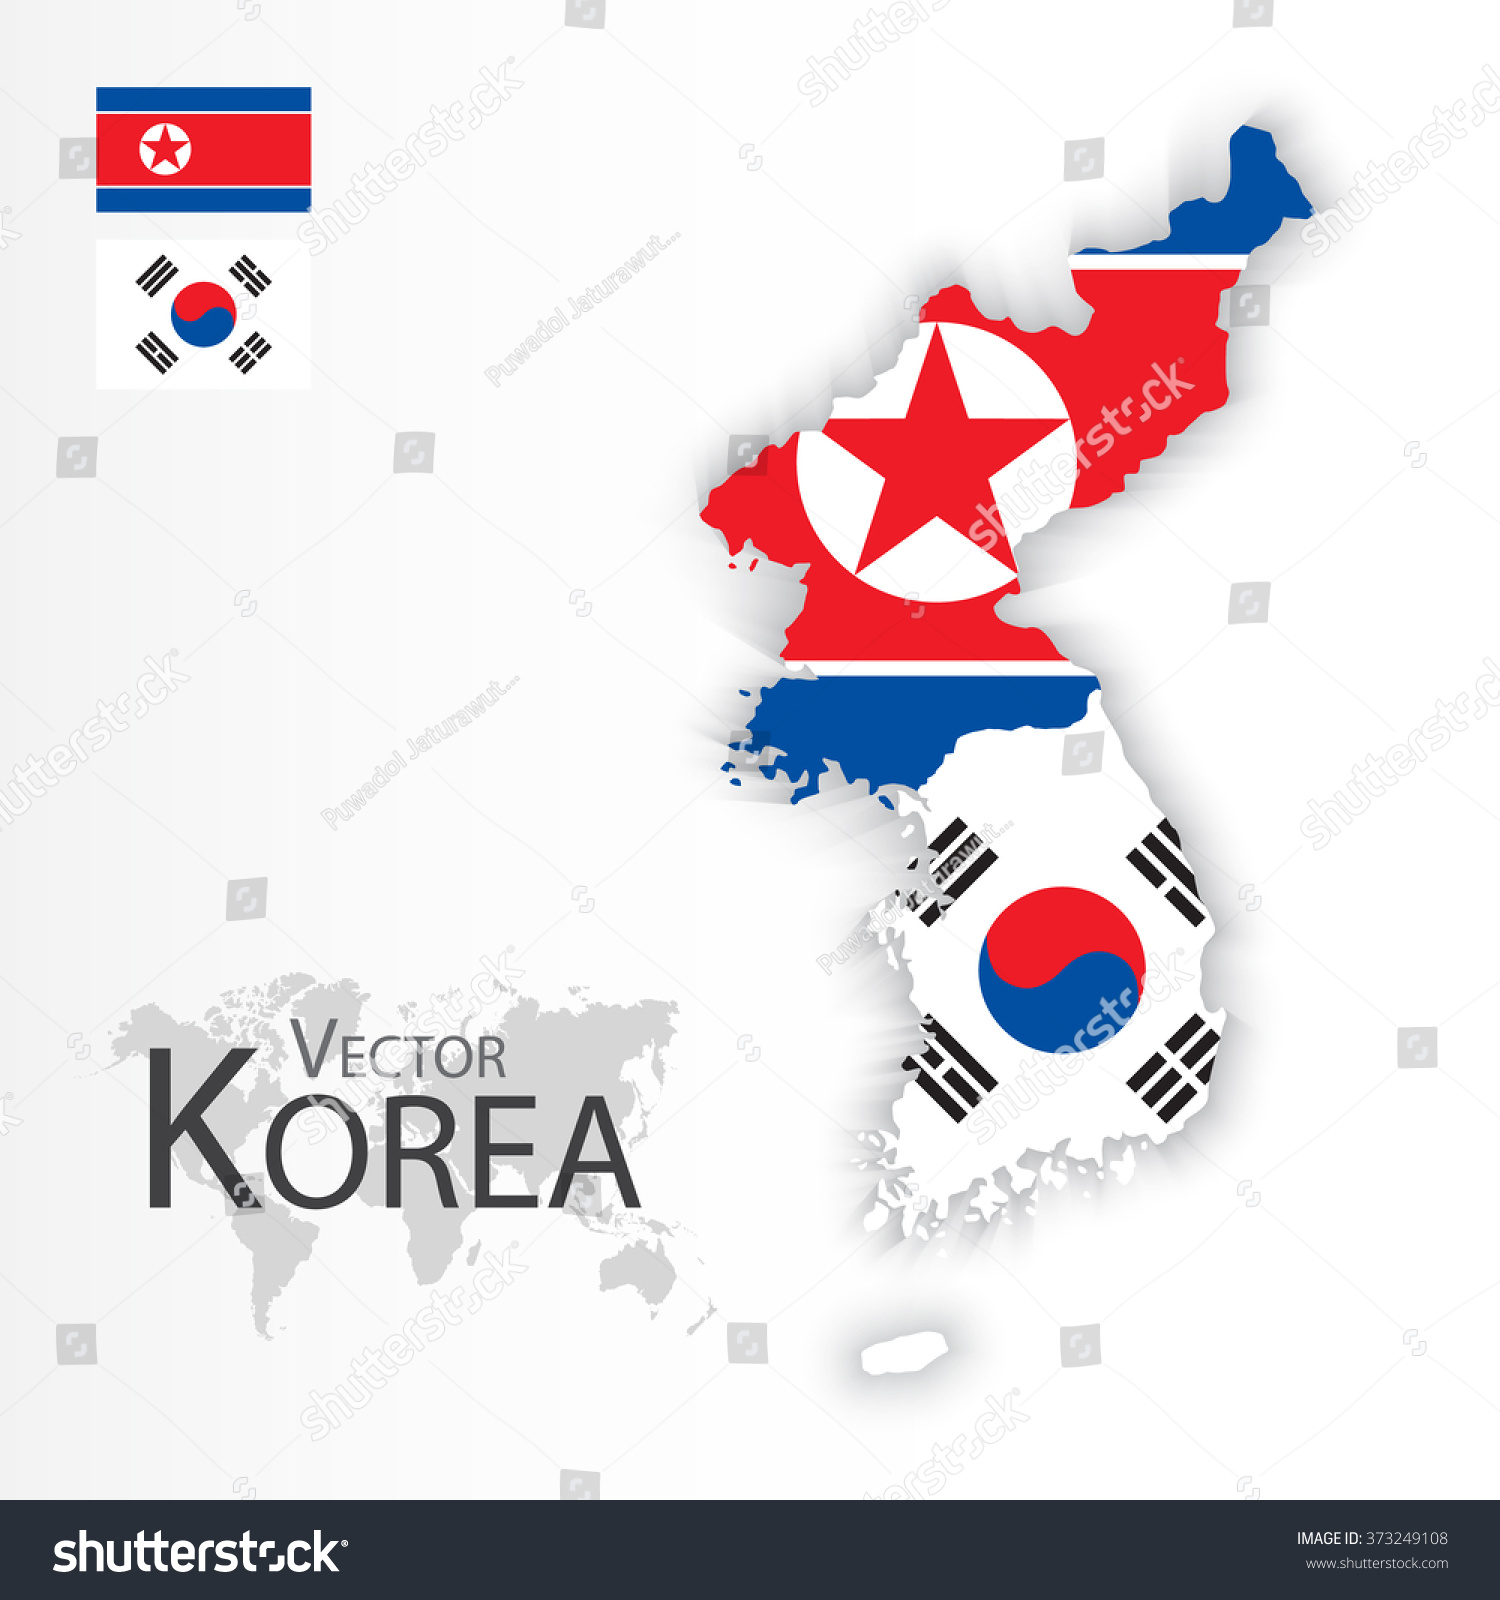 North Korea Democratic People s Republic of Korea and South Korea Republic of South Korea flag and map transportation and tourism concept